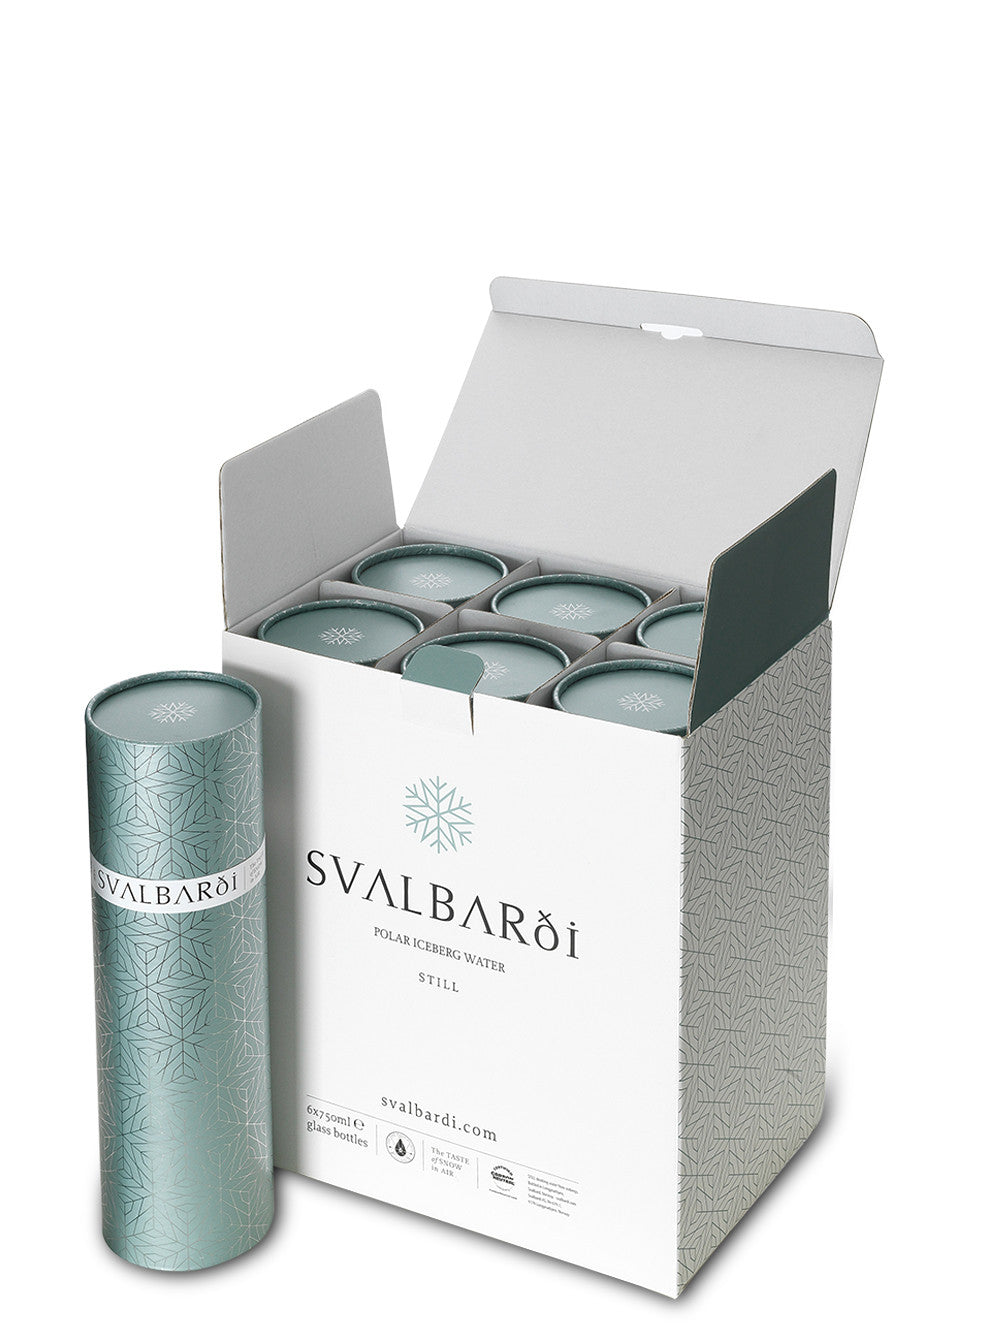 Case of 6 with Gift Tubes (€69.95/bottle) - Free Shipping